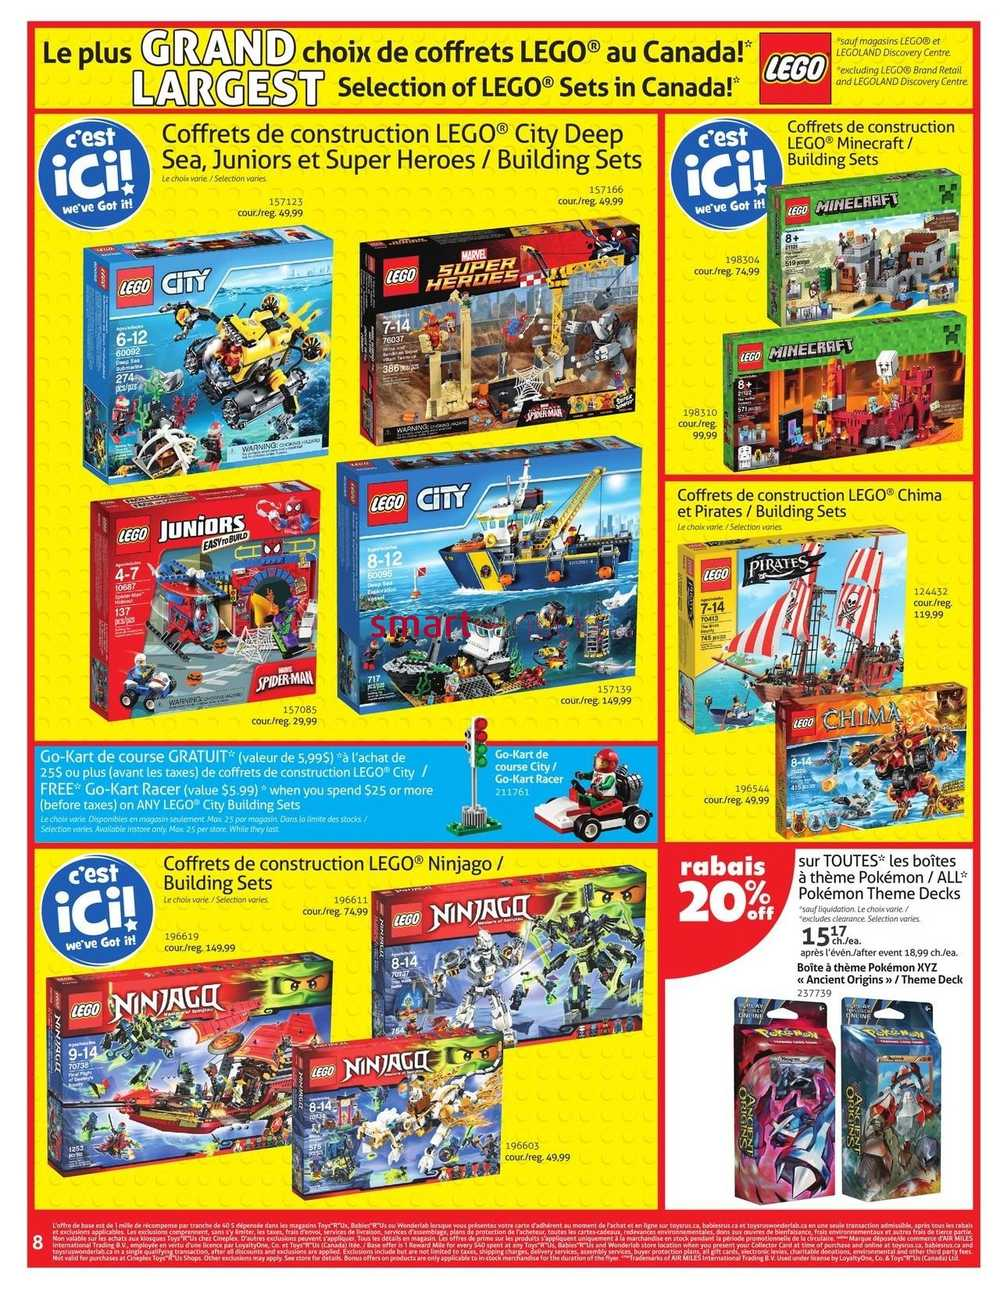 Toys r us canada coupons august 2018